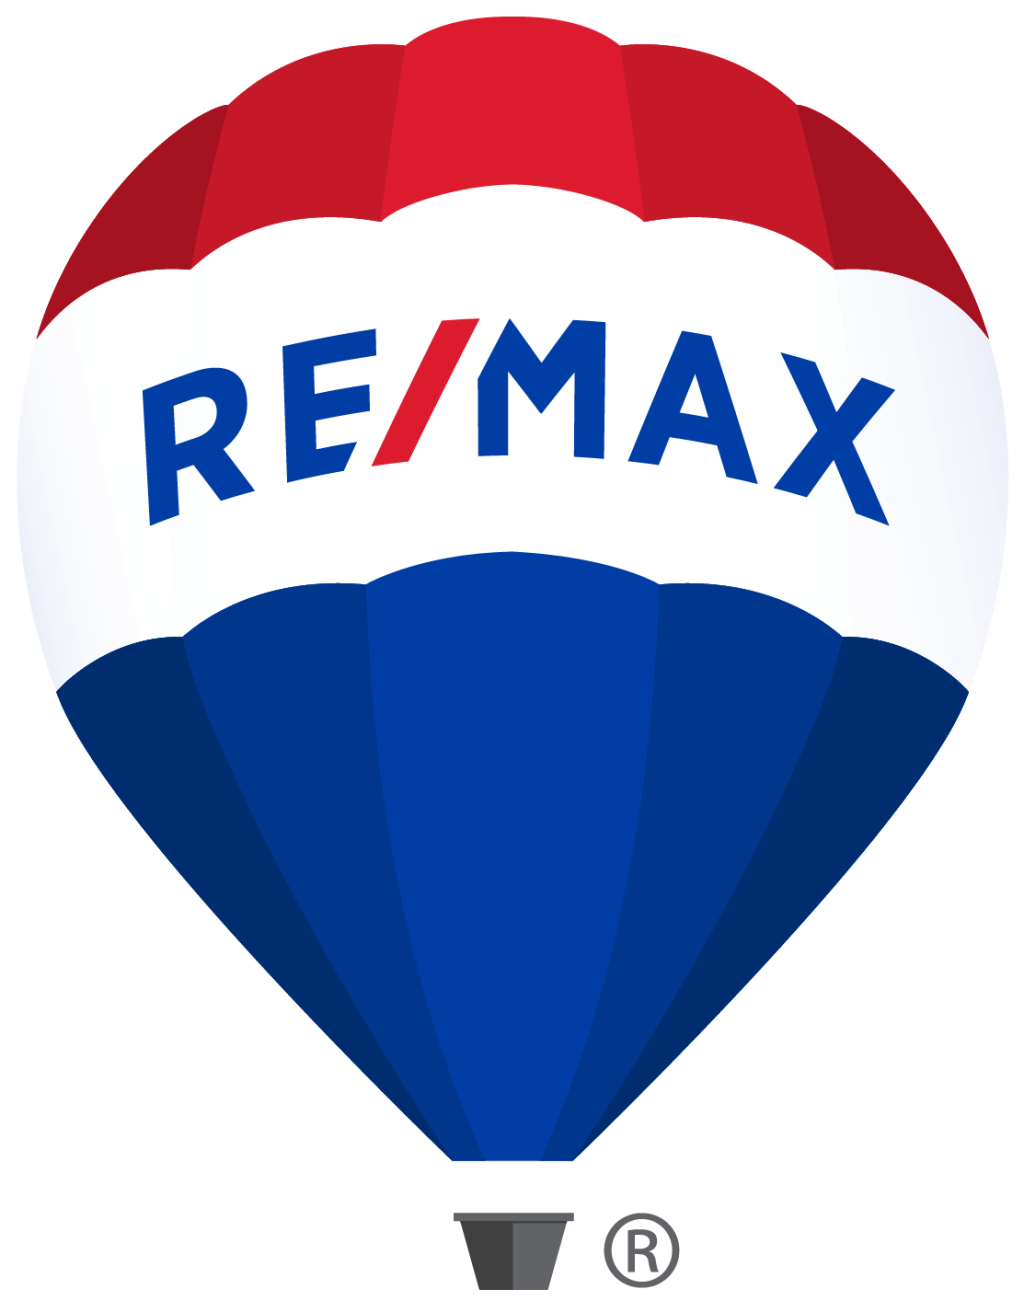 RE/MAX Tower-Donna Tewmey